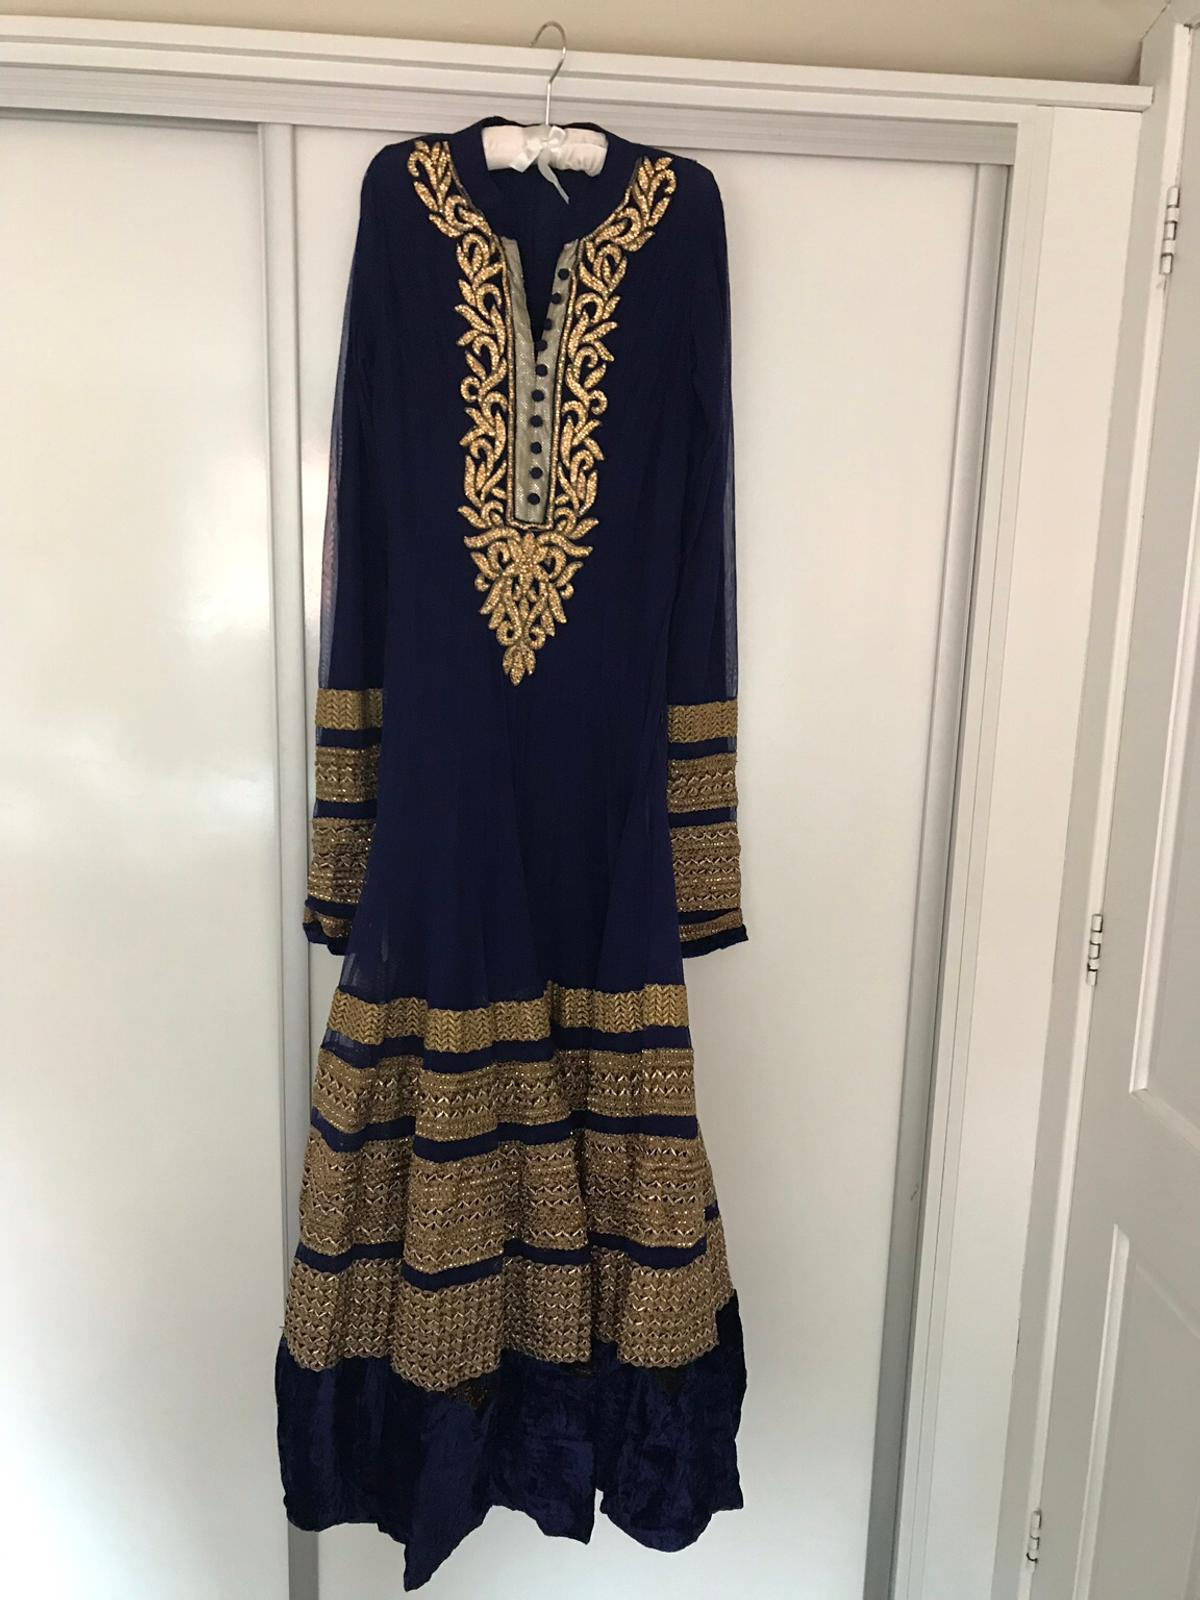 Indian Royal Blue And Gold Maxi Dress In Bb1 Blackburn For 65 00 For Sale Shpock